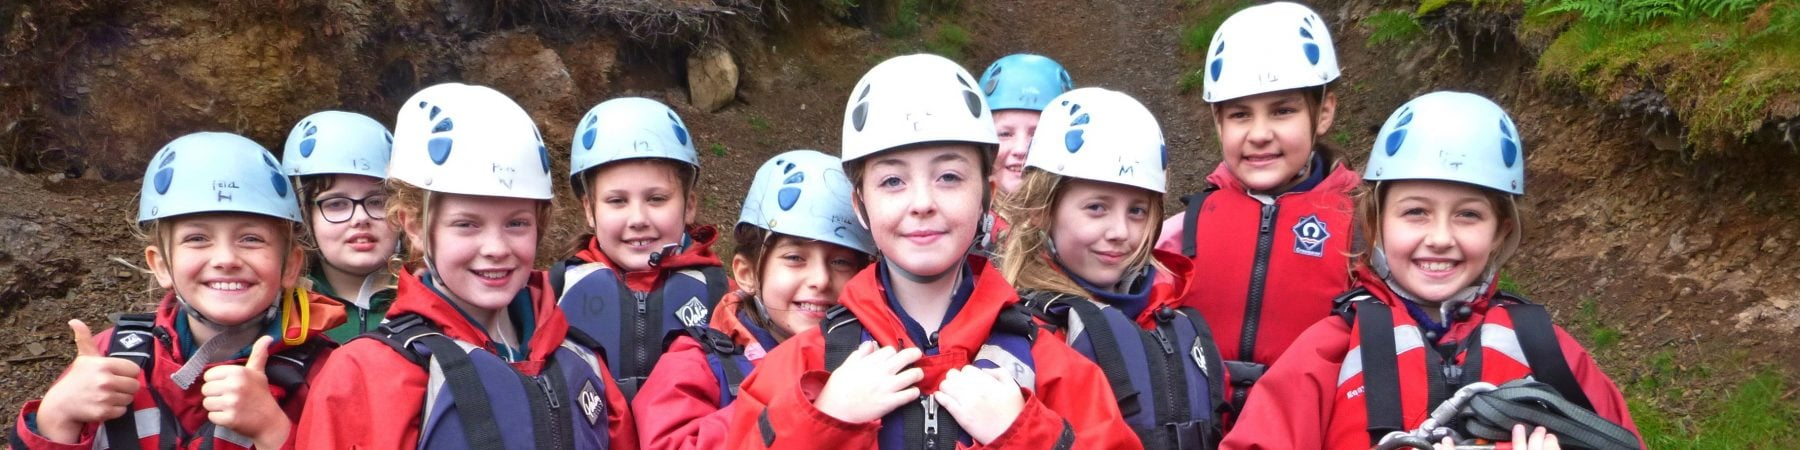 Group kitted out, gorge scramble activity primary school pupils Snowdonia